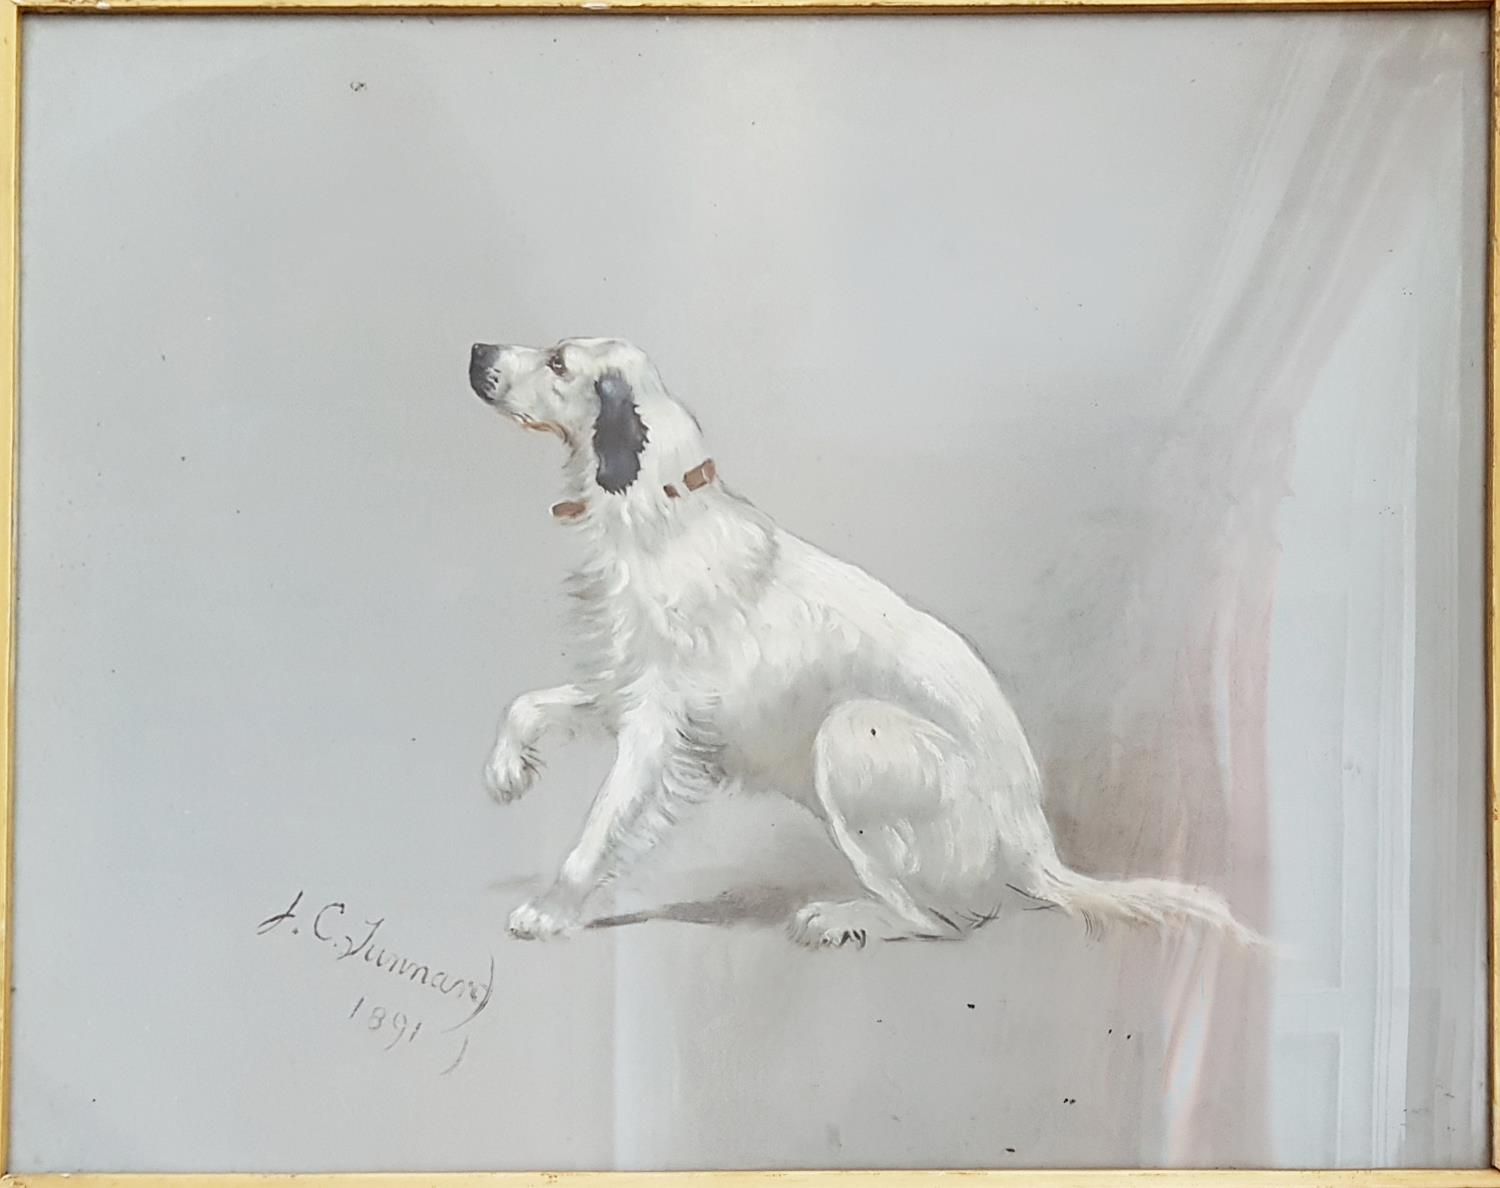 Lot 42 - A good Pastel of a Setter by J C Junnard. Signed LL and dated 1891. 58cm.